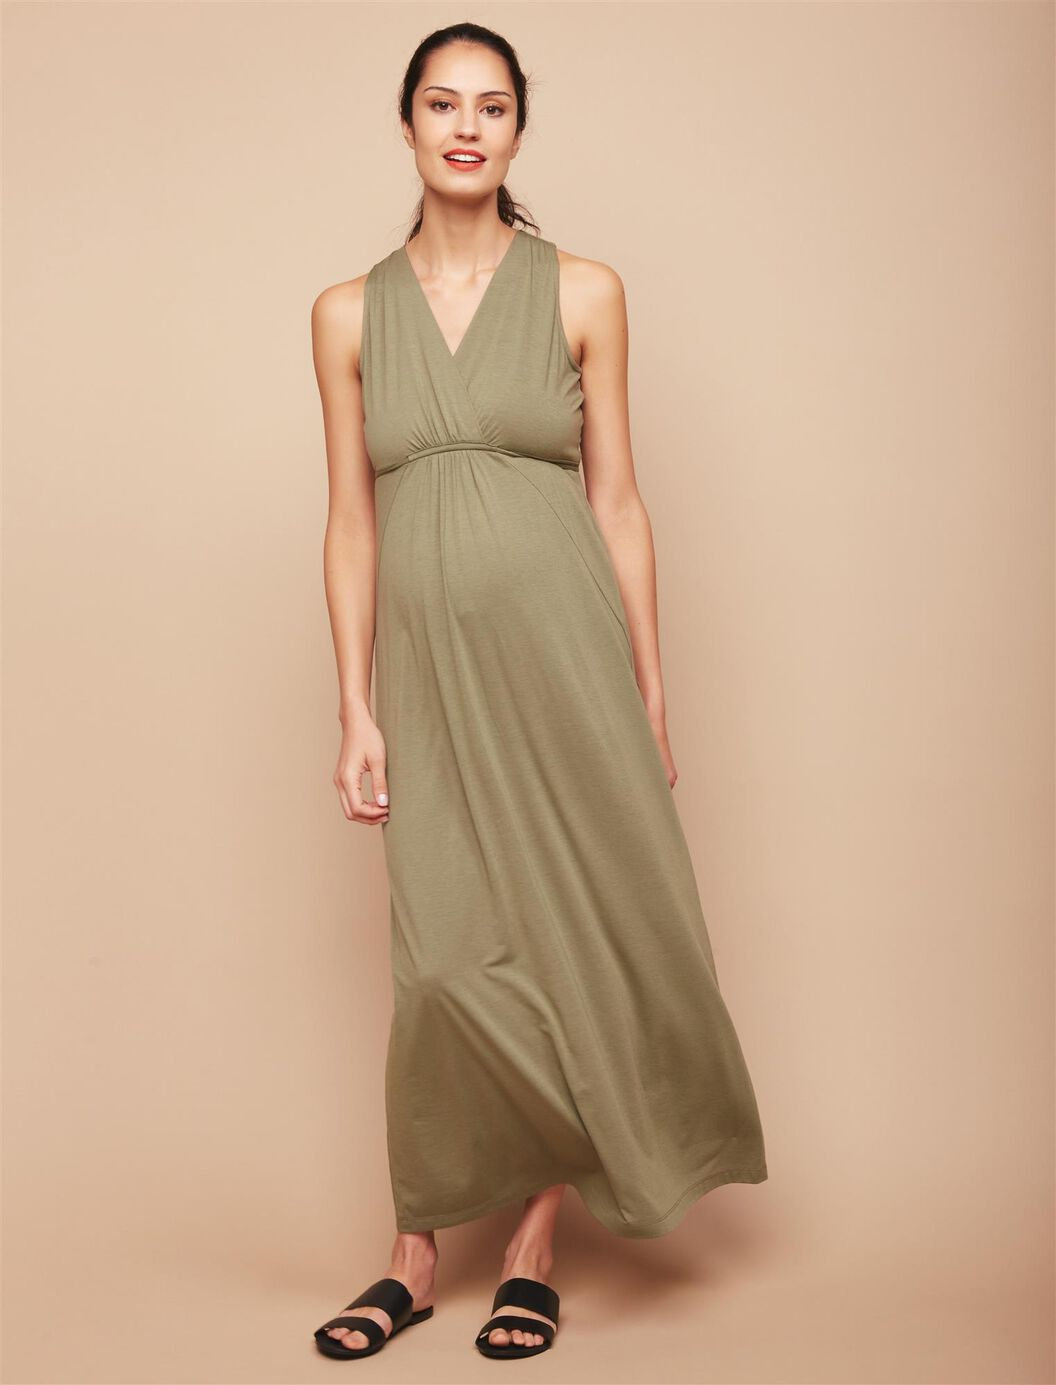 Surplice Neckline Maternity Maxi Dress- Green at Motherhood Maternity in Victor, NY | Tuggl